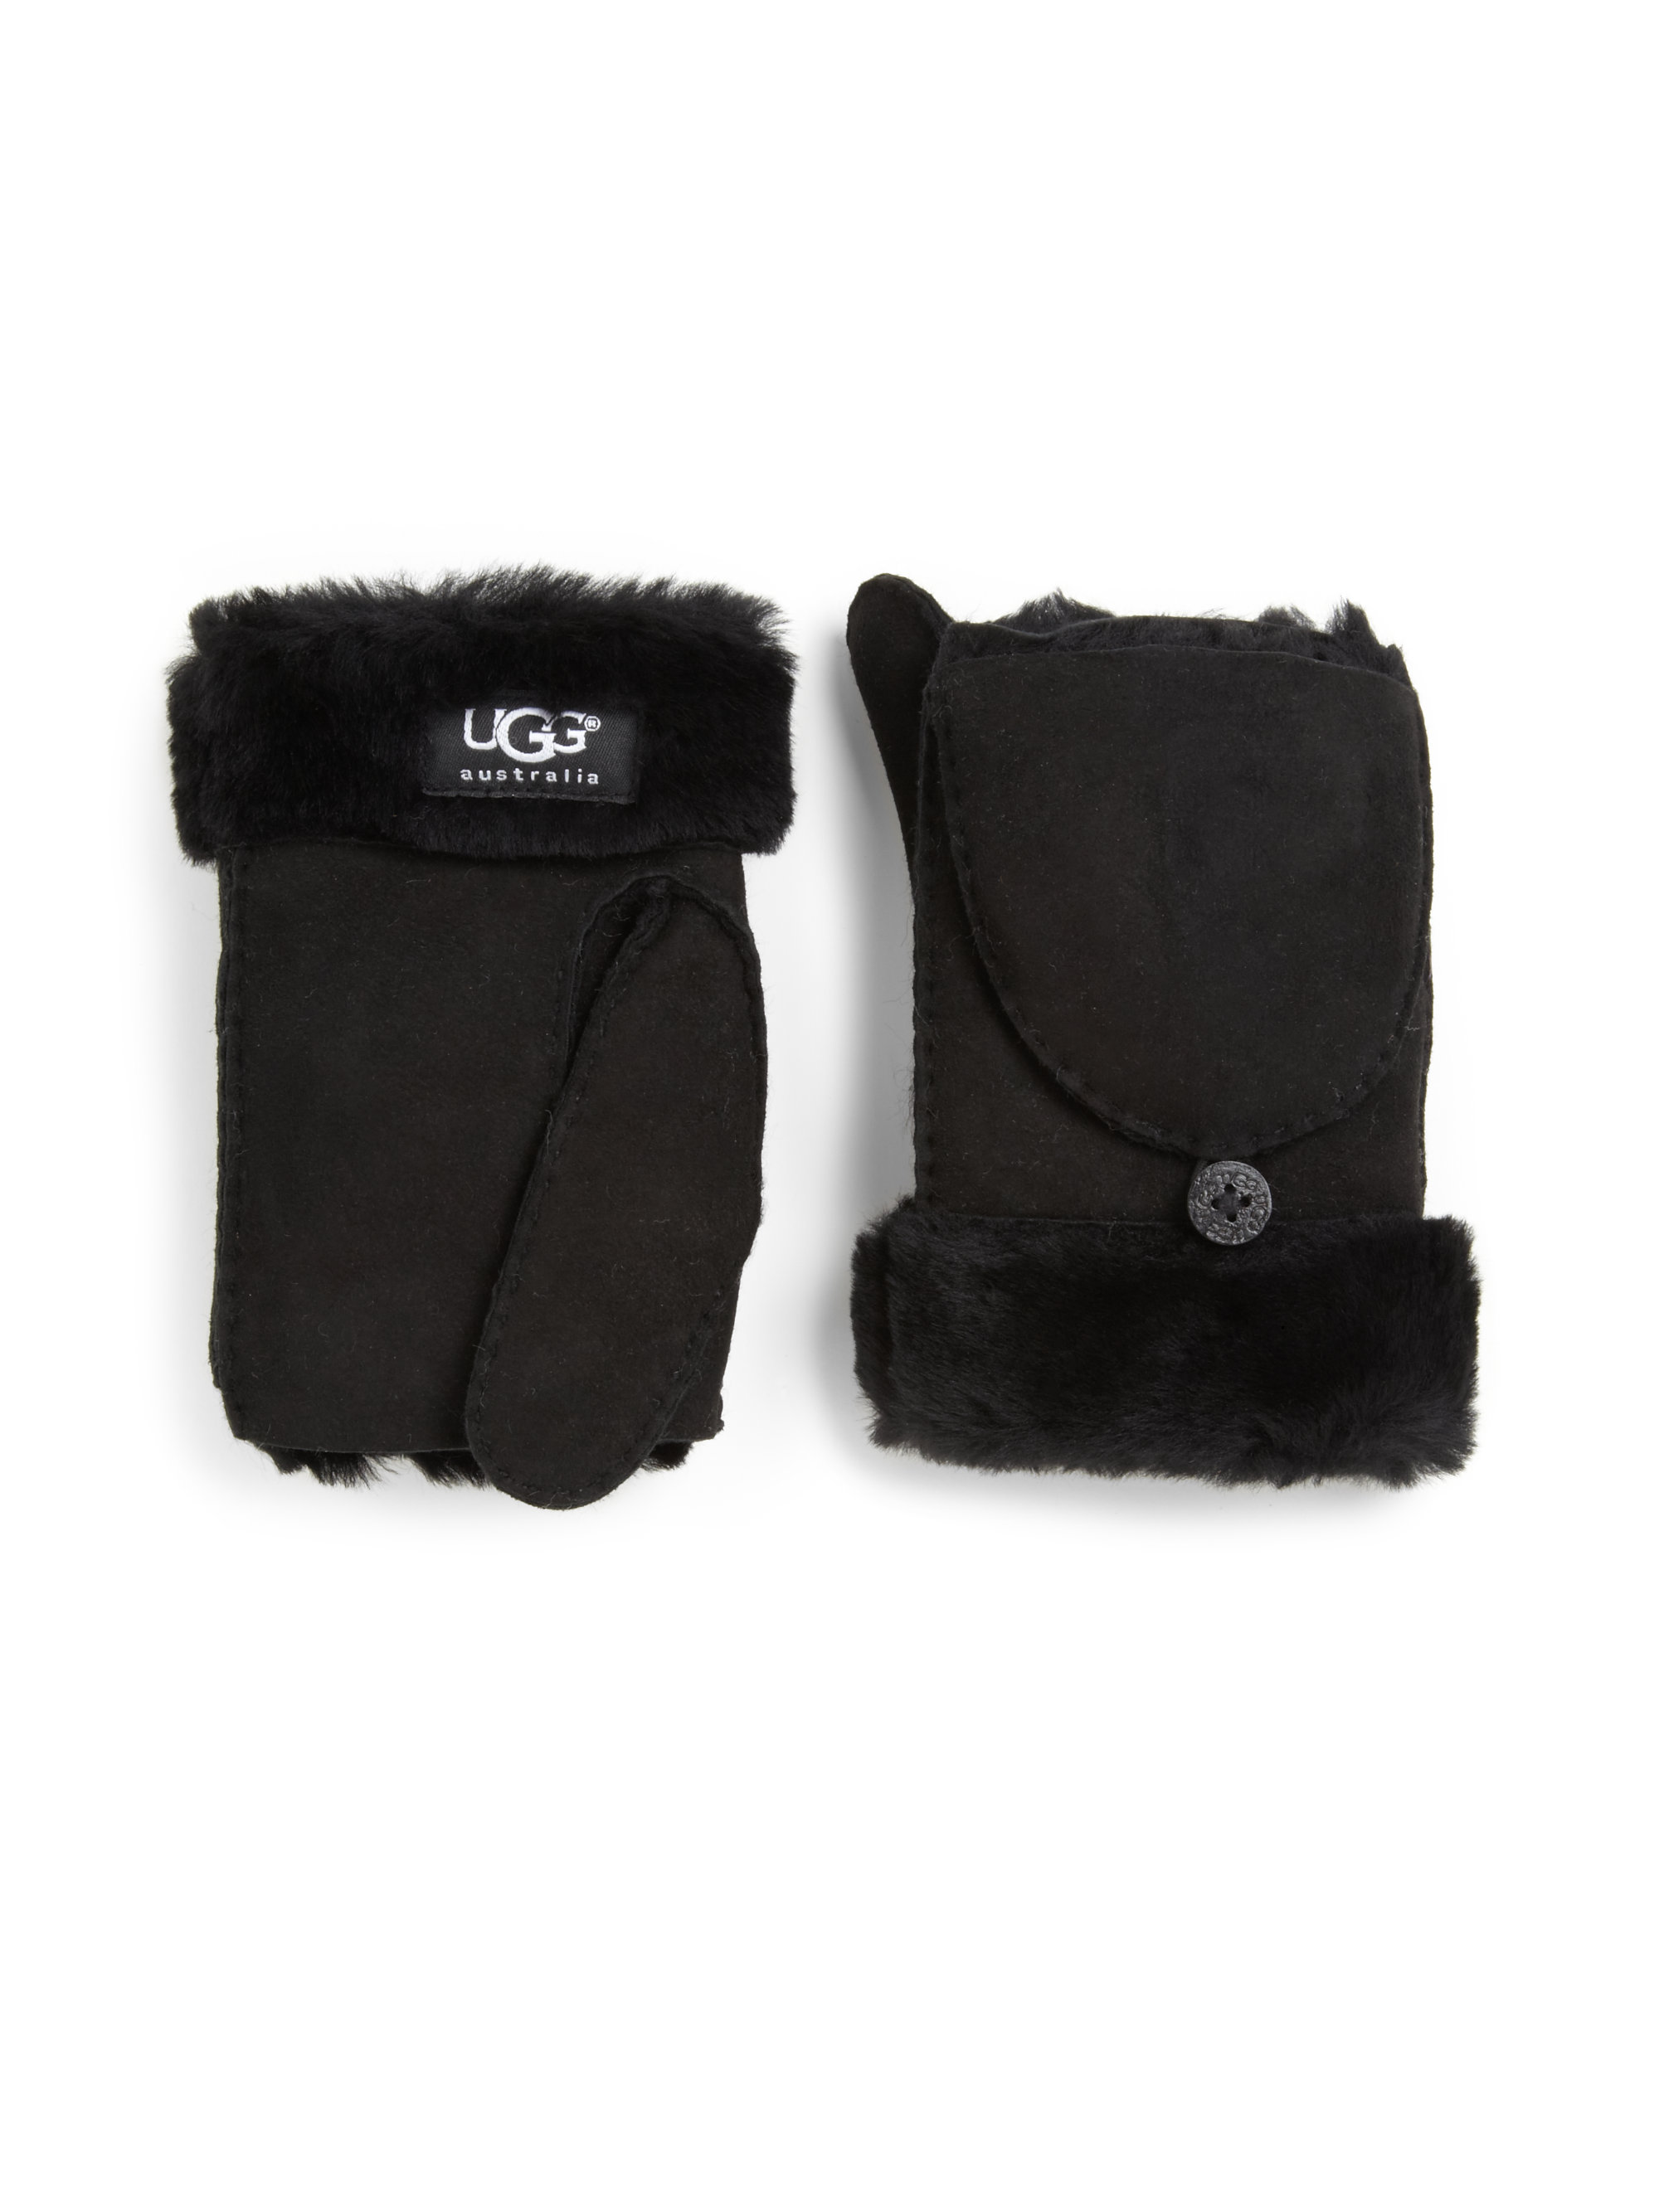 Ugg Convertible Shearling Mittens In